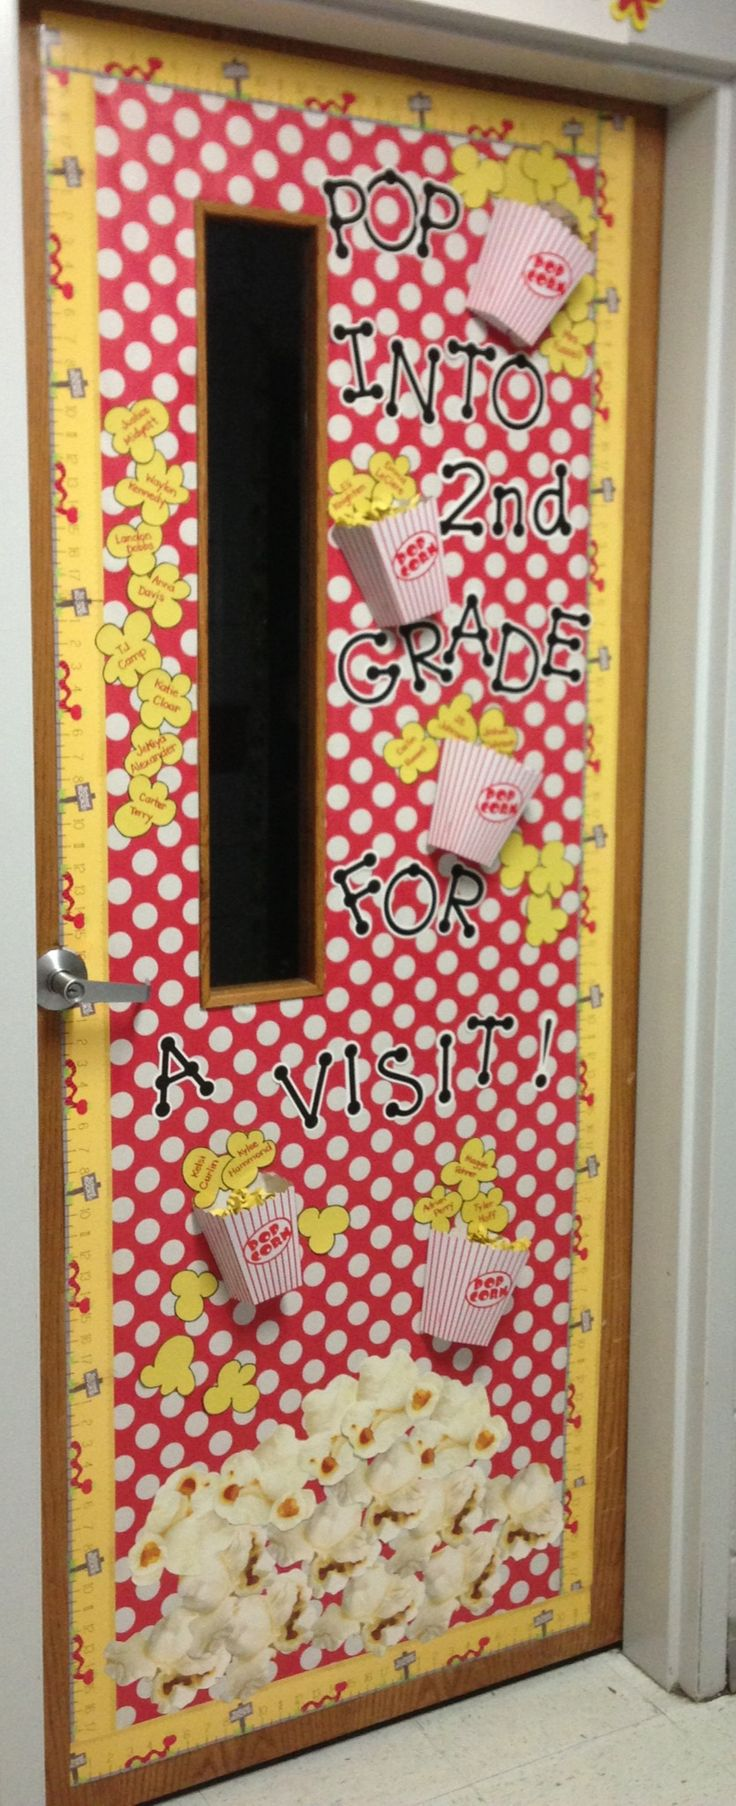 Back to school door decor made with Dollar Store popcorn boxes. Would be cute during May and summer when new members join colorguard